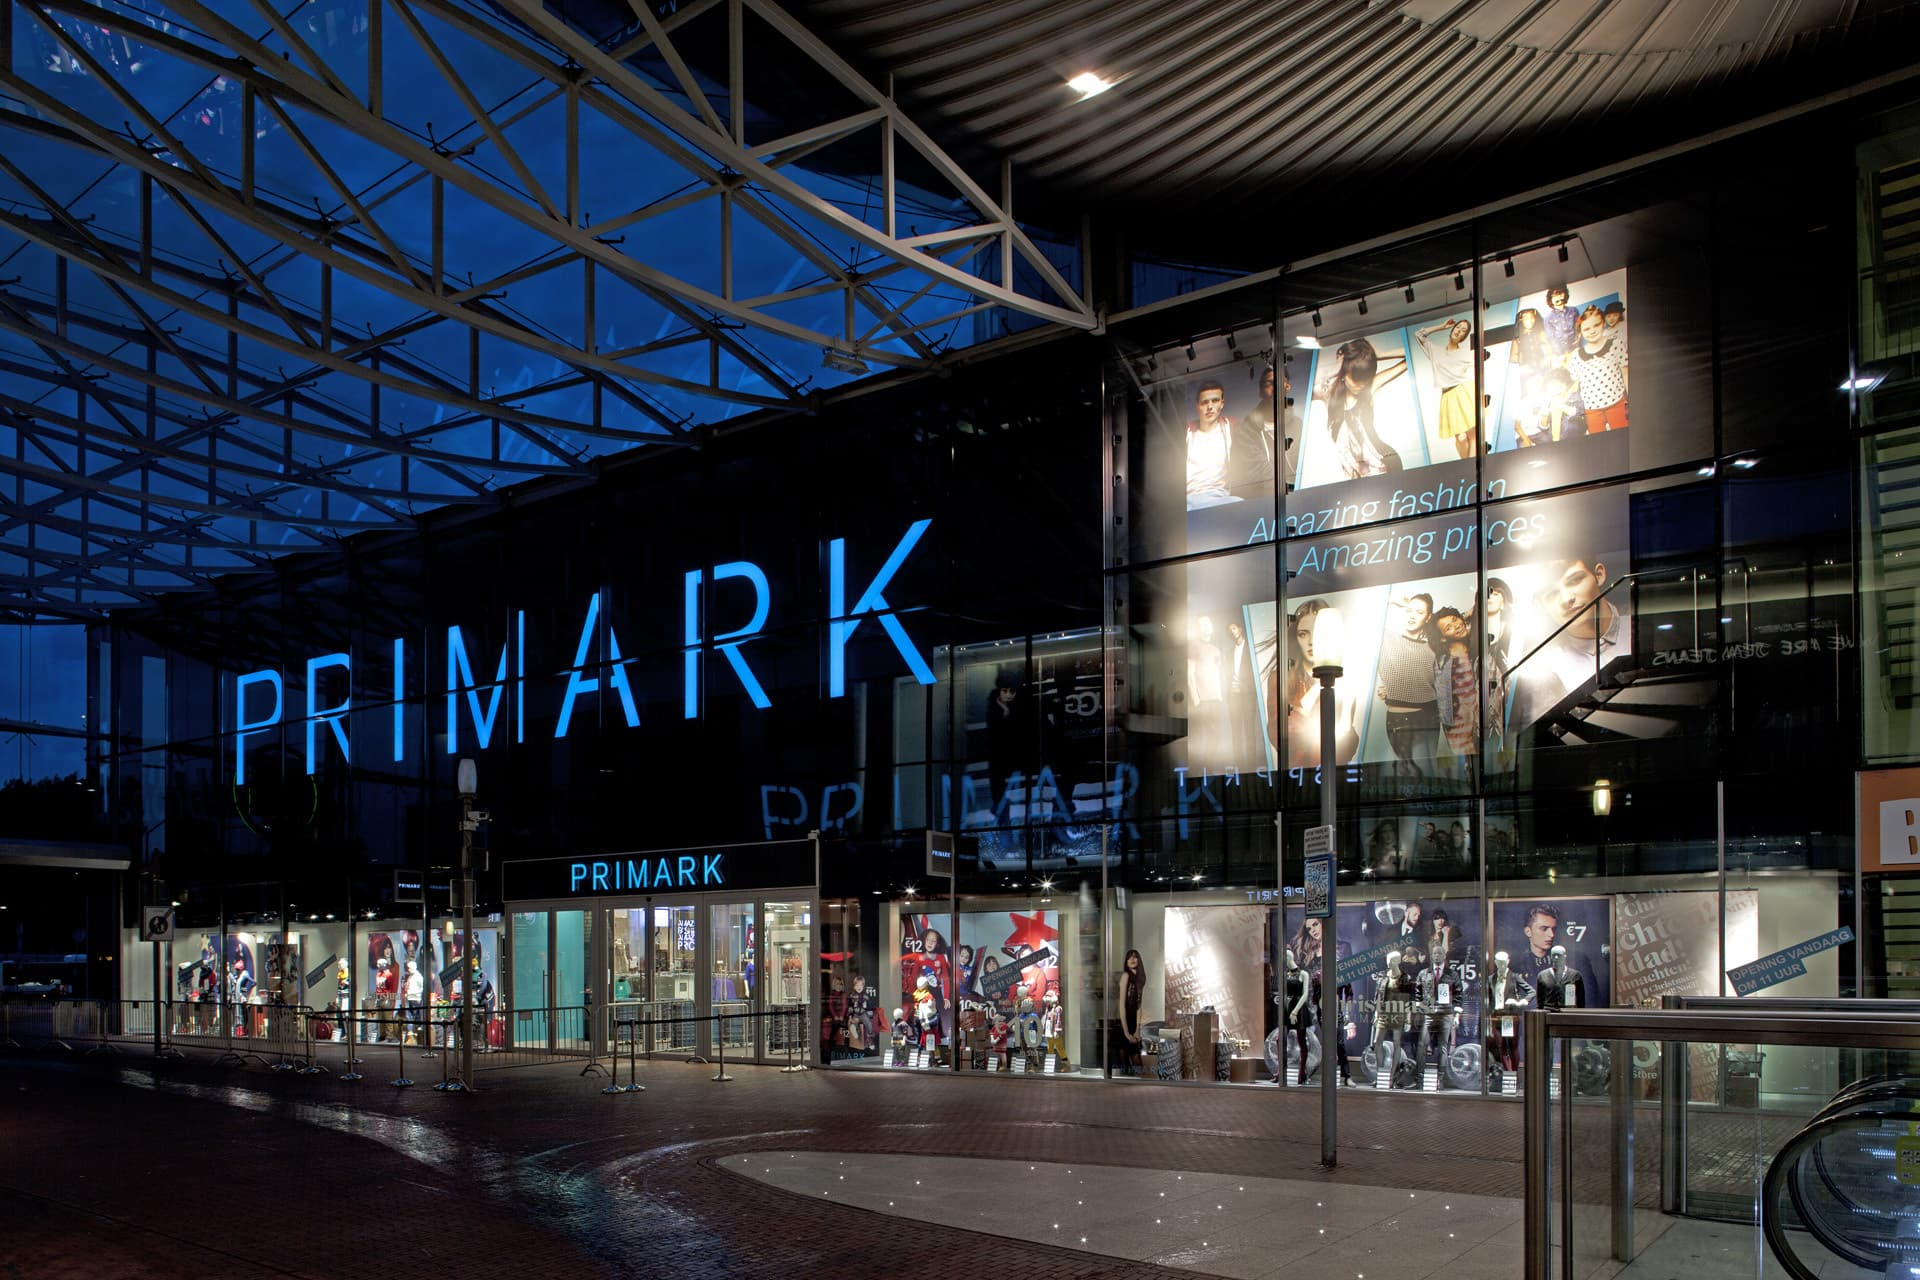 With items as cheap as £5, Primark makes affordable yet contemporary clothing. - Photo courtesy: primark.com